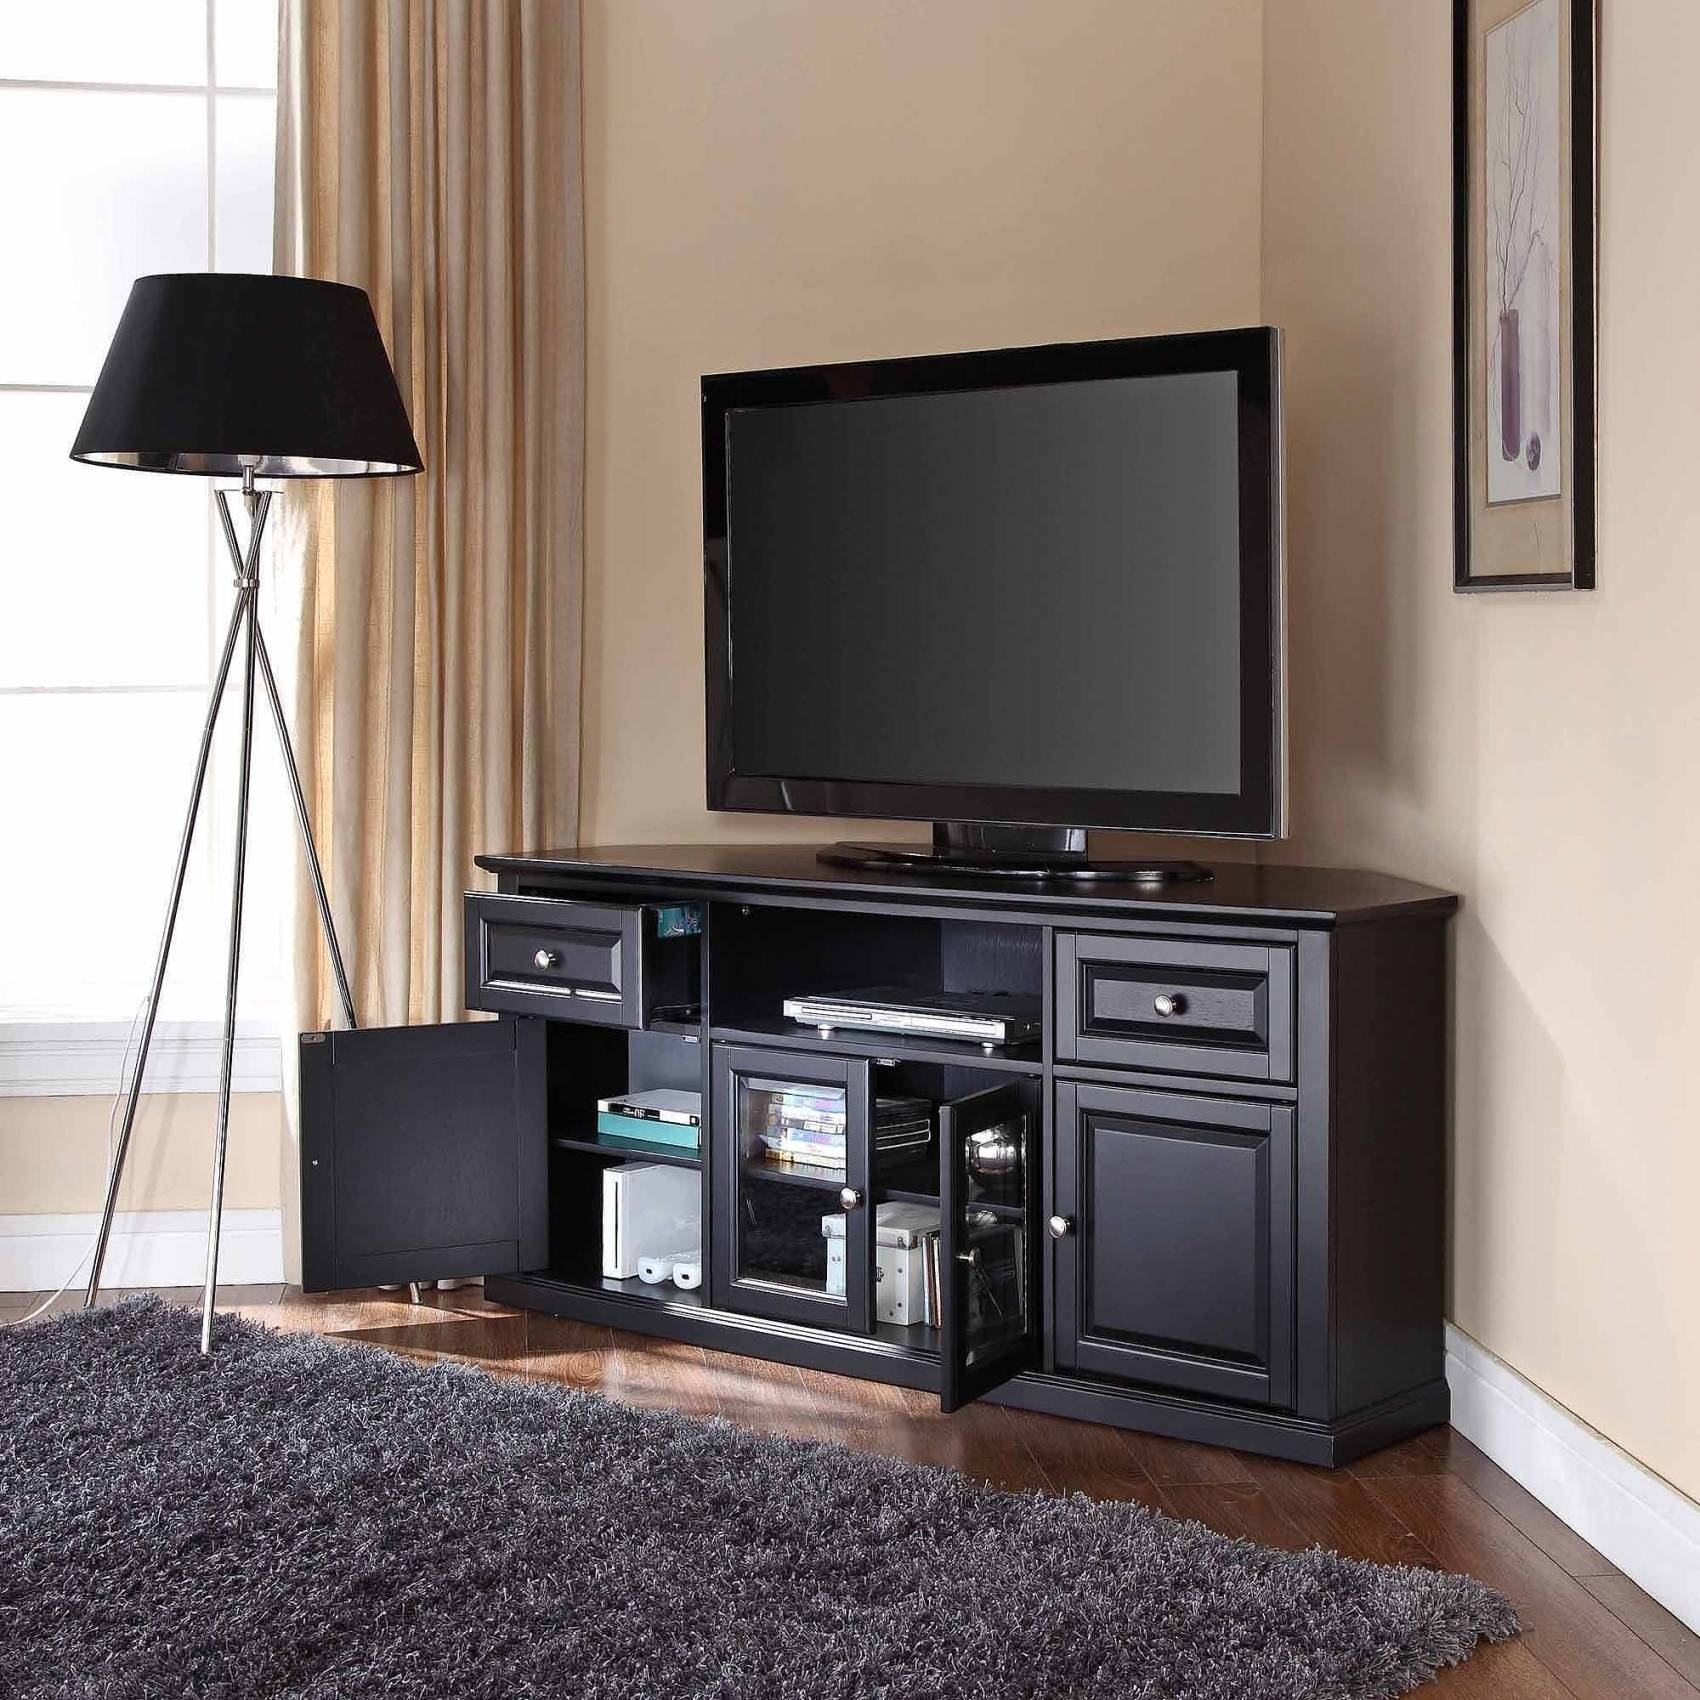 Modern Tv Stands Up To 60 Inches Fresh | Vgmnation within Modern Tv Stands For 60 Inch Tvs (Image 9 of 15)